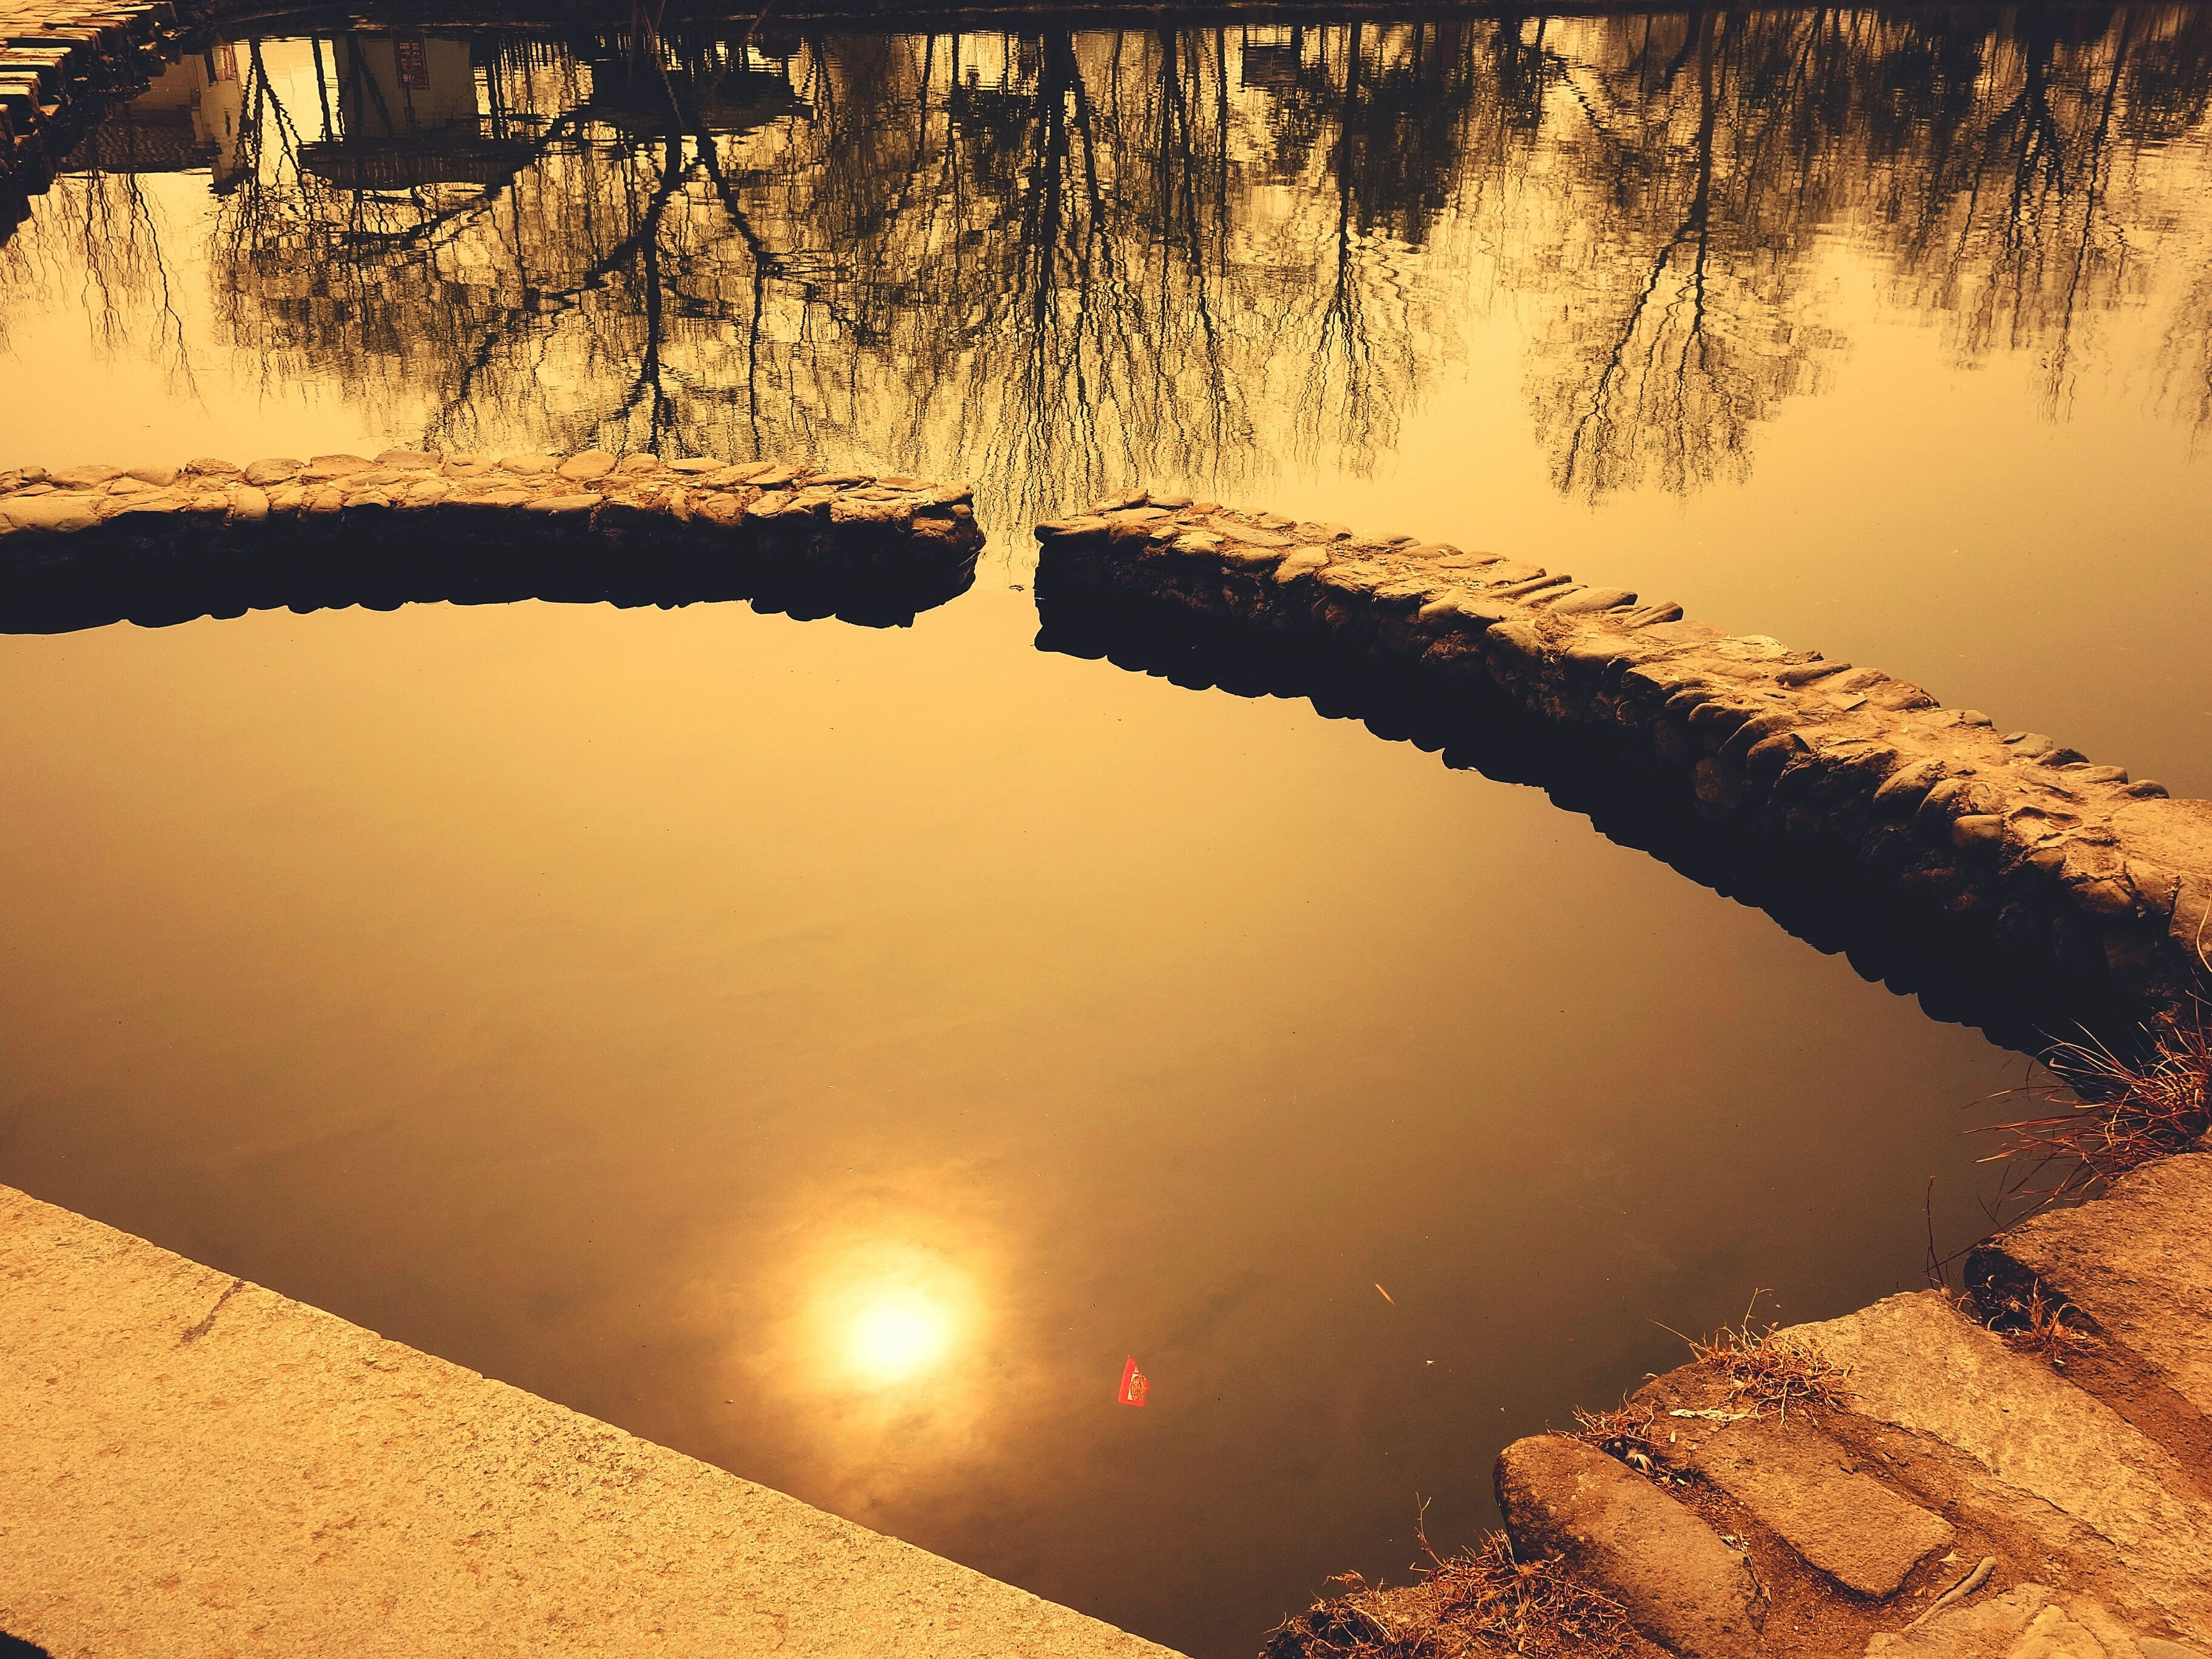 water, reflection, tranquility, tranquil scene, nature, tree, sunset, scenics, beauty in nature, lake, sunlight, silhouette, standing water, built structure, sky, outdoors, no people, high angle view, idyllic, sun